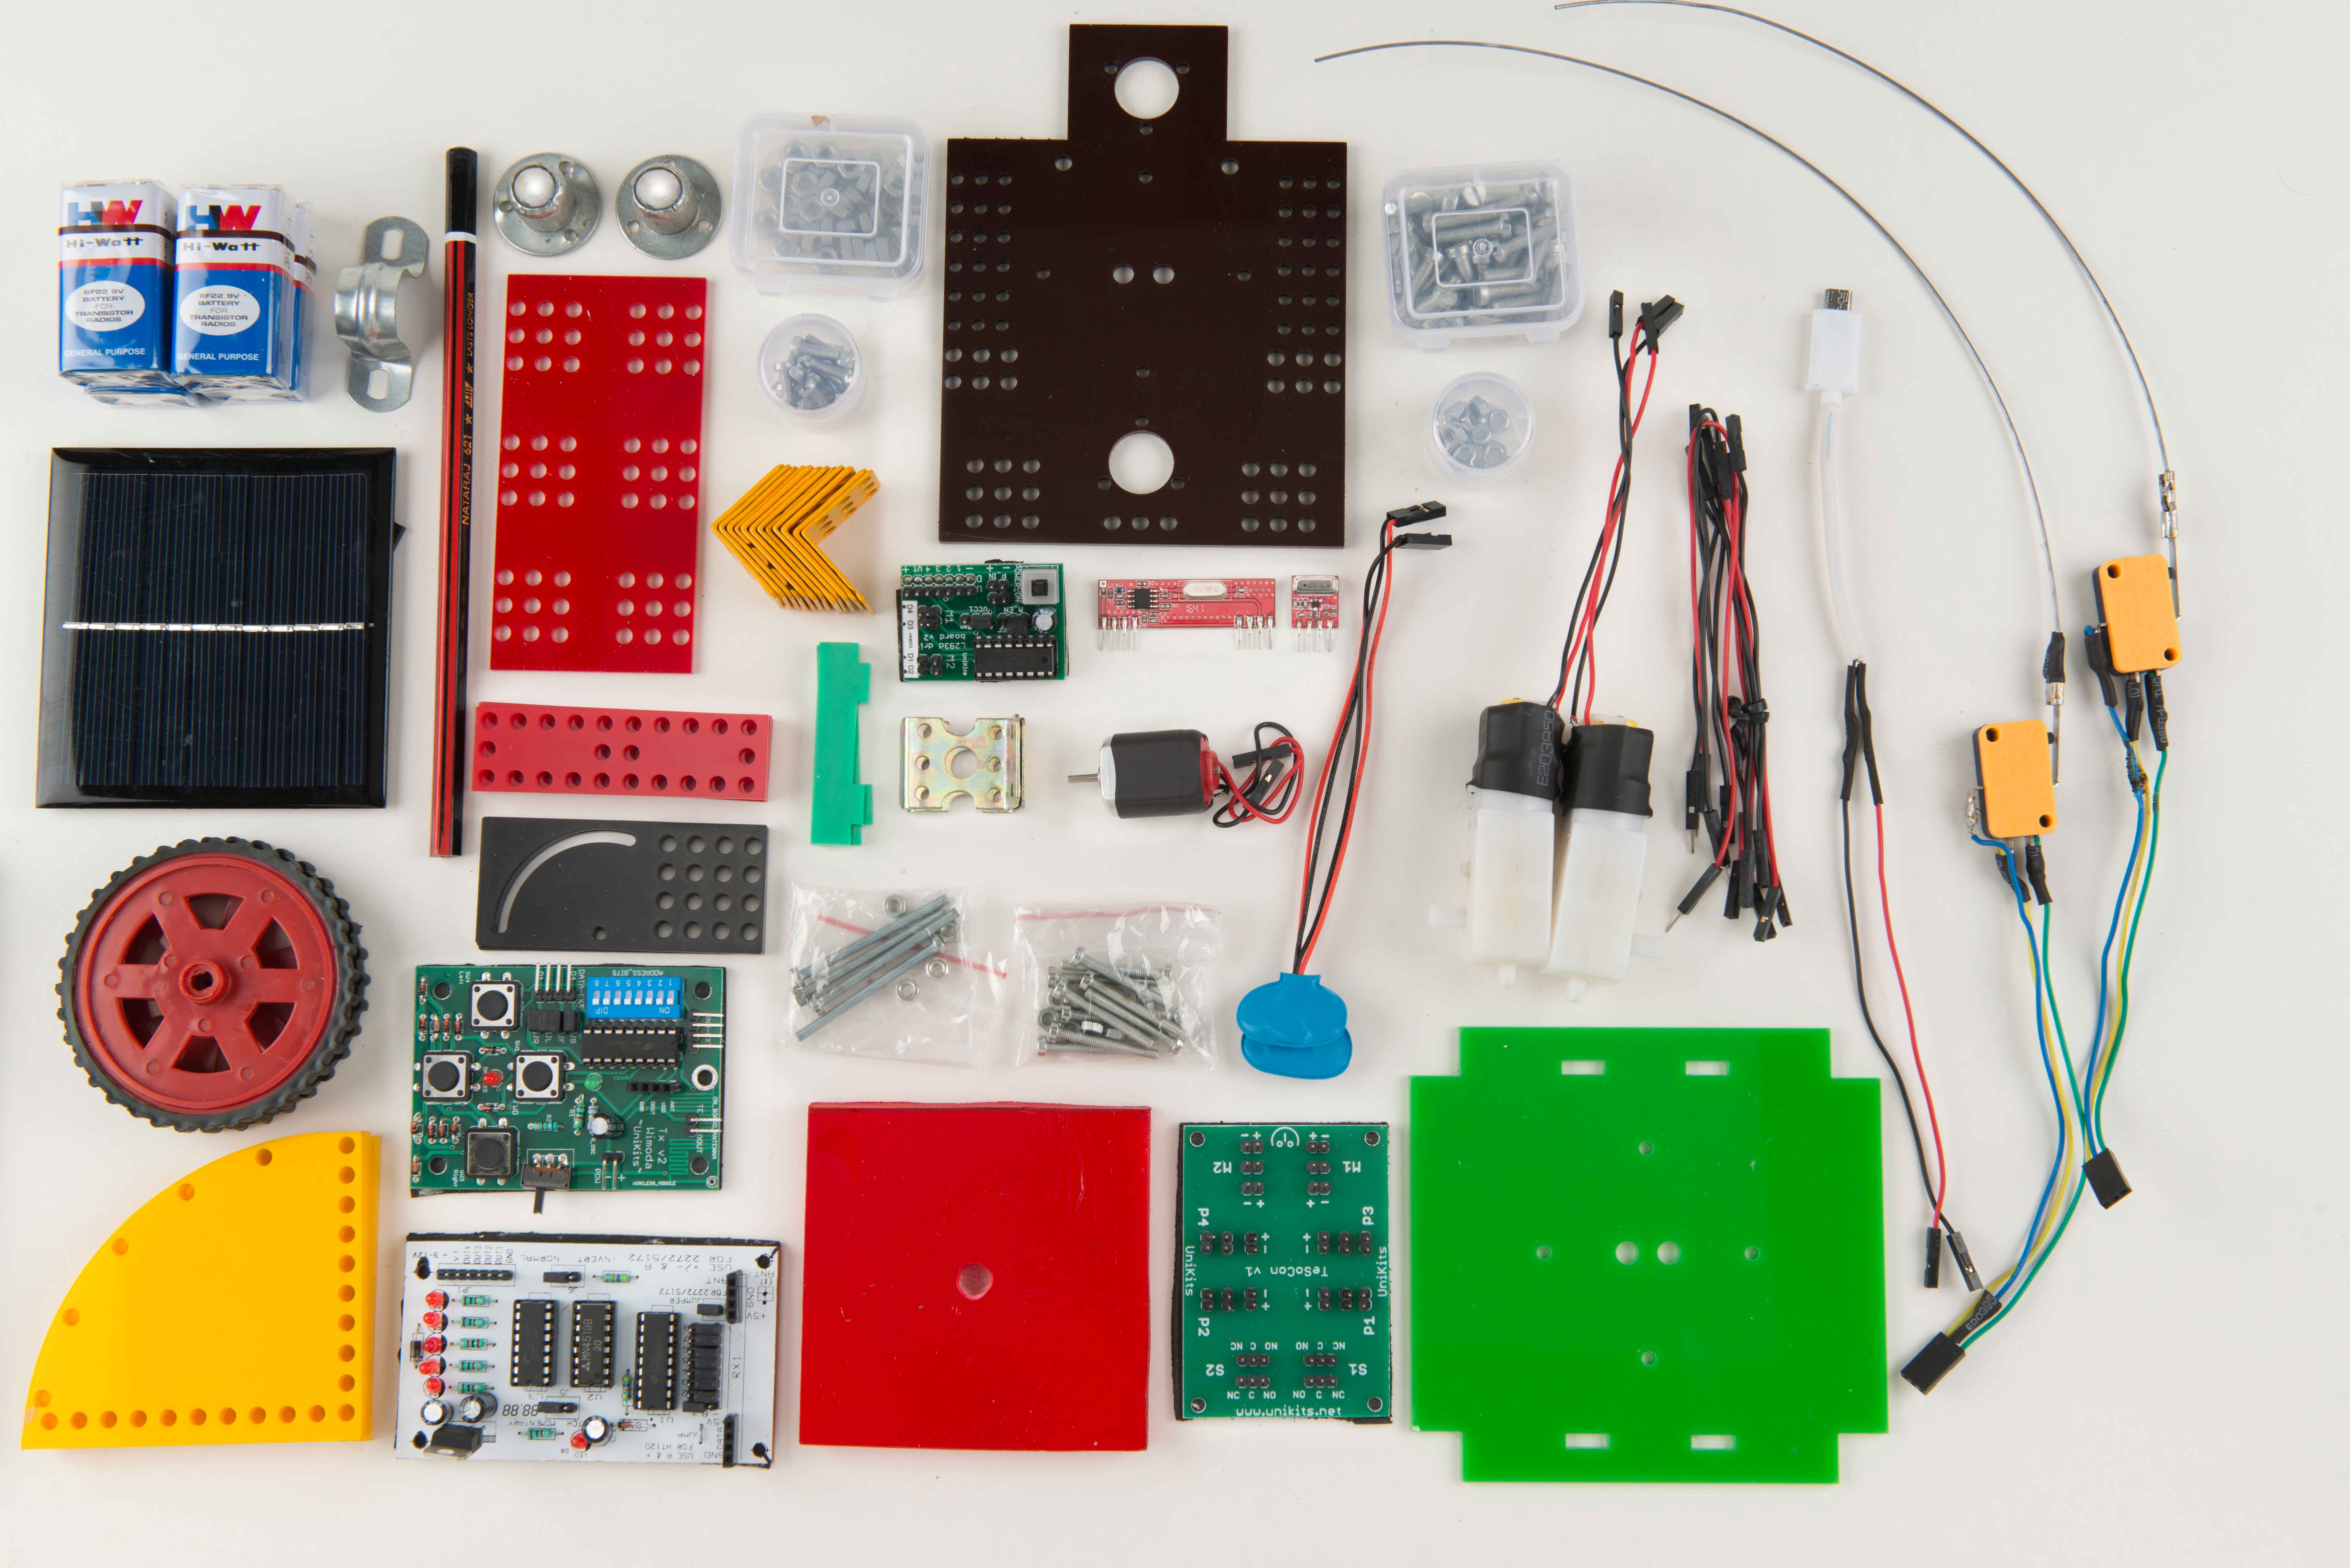 O'Botz offers Takeaway Robot Kits for Kids which has Coding Robot and Coding Toys for Kids